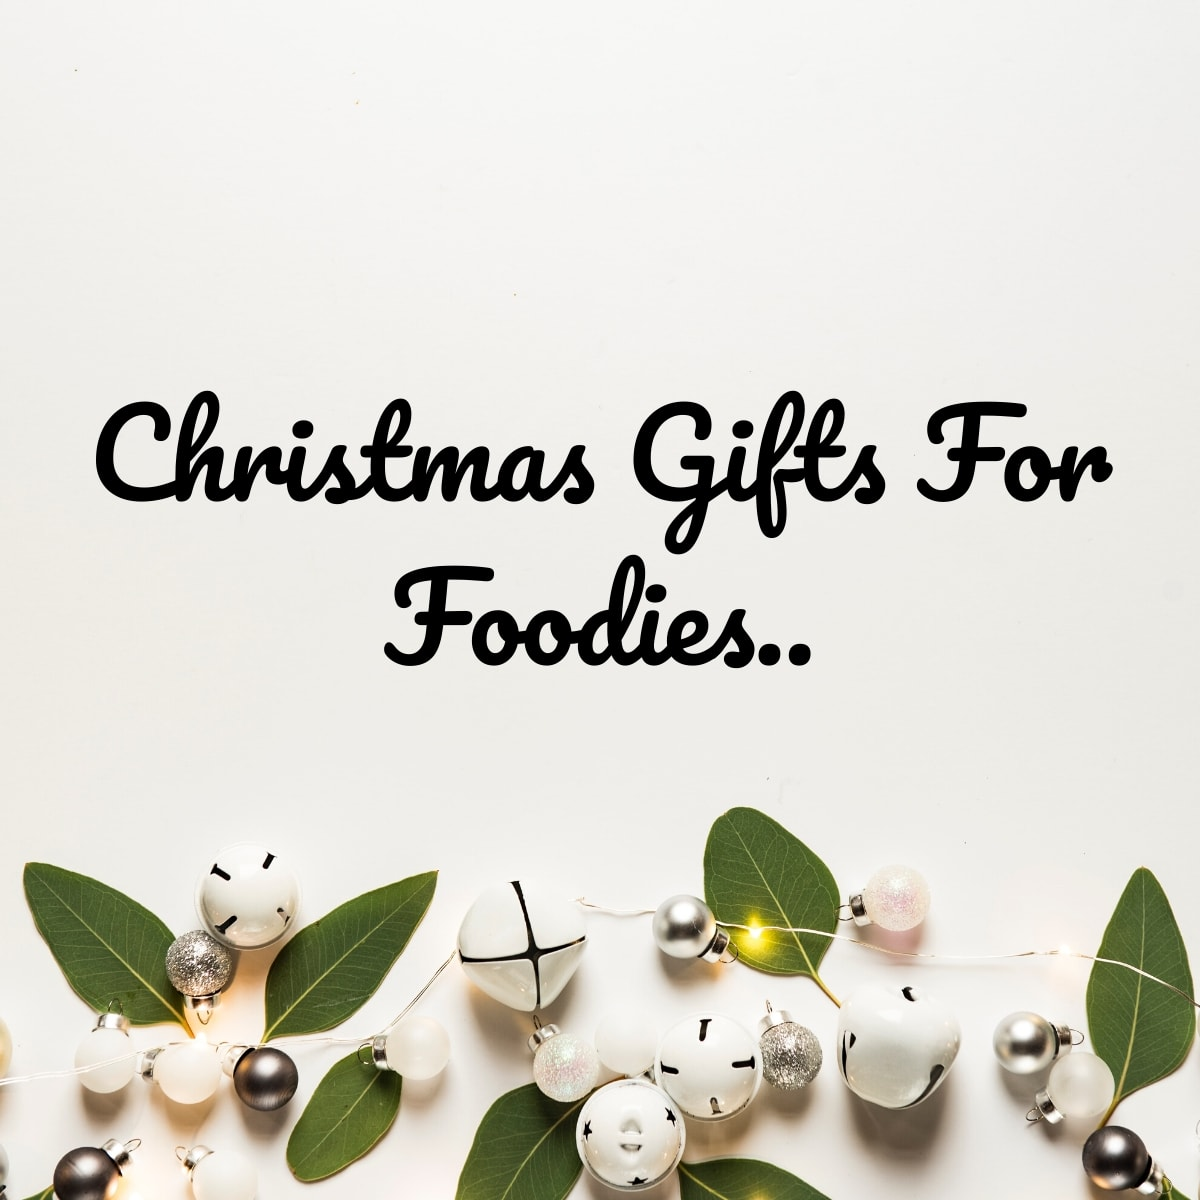 Christmas Gift Ideas For Foodies 2020